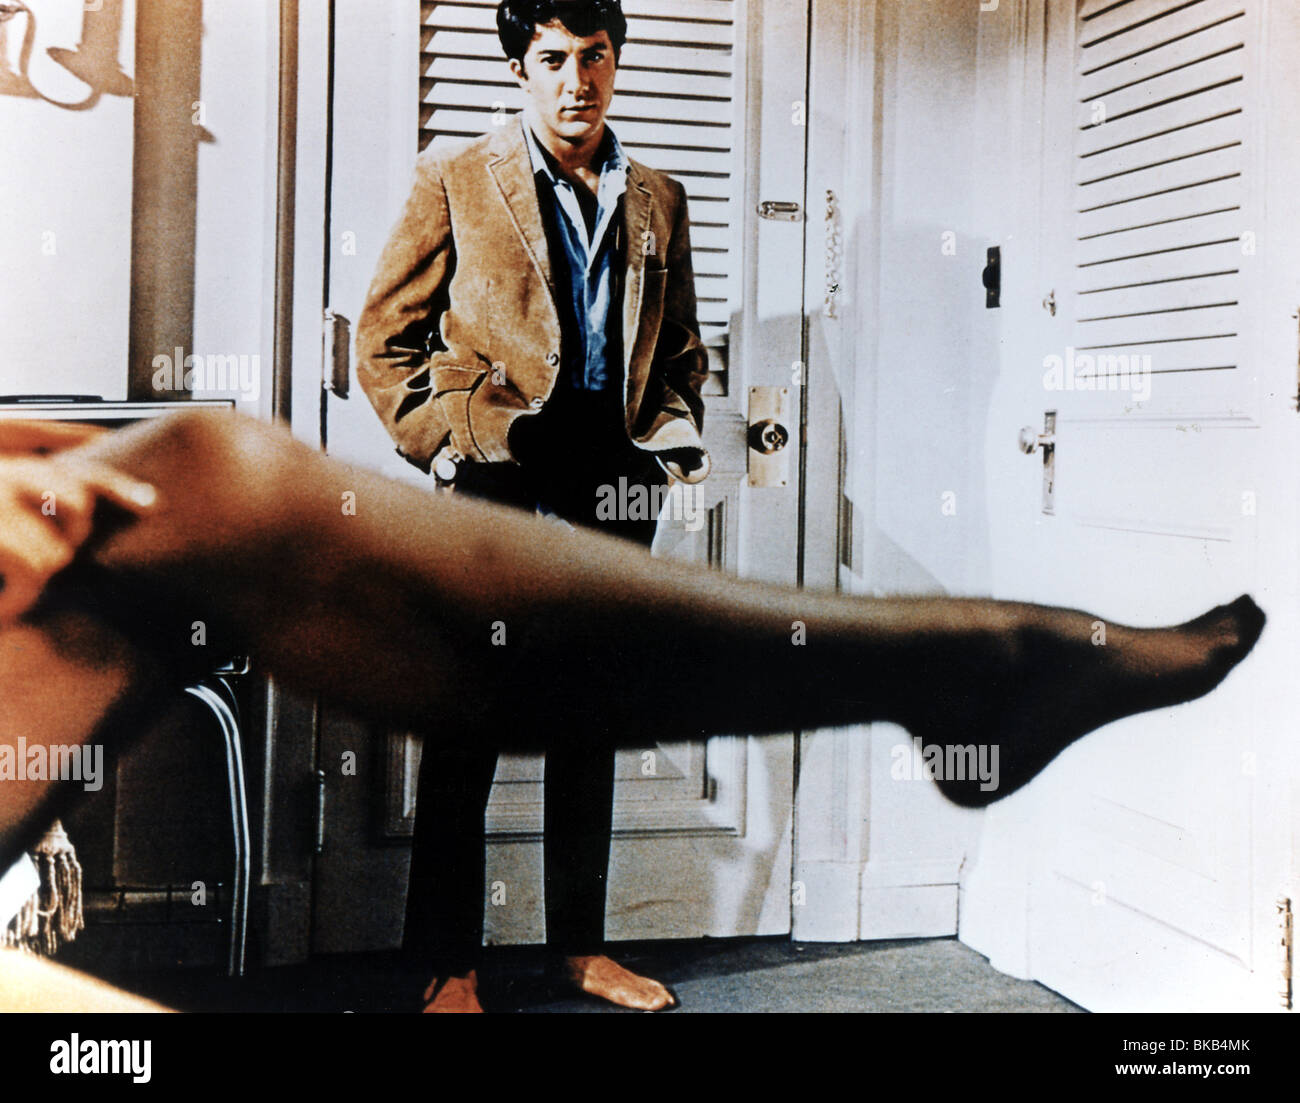 THE GRADUATE (1967) DUSTIN HOFFMAN STOCKING GRD 010CP - Stock Image